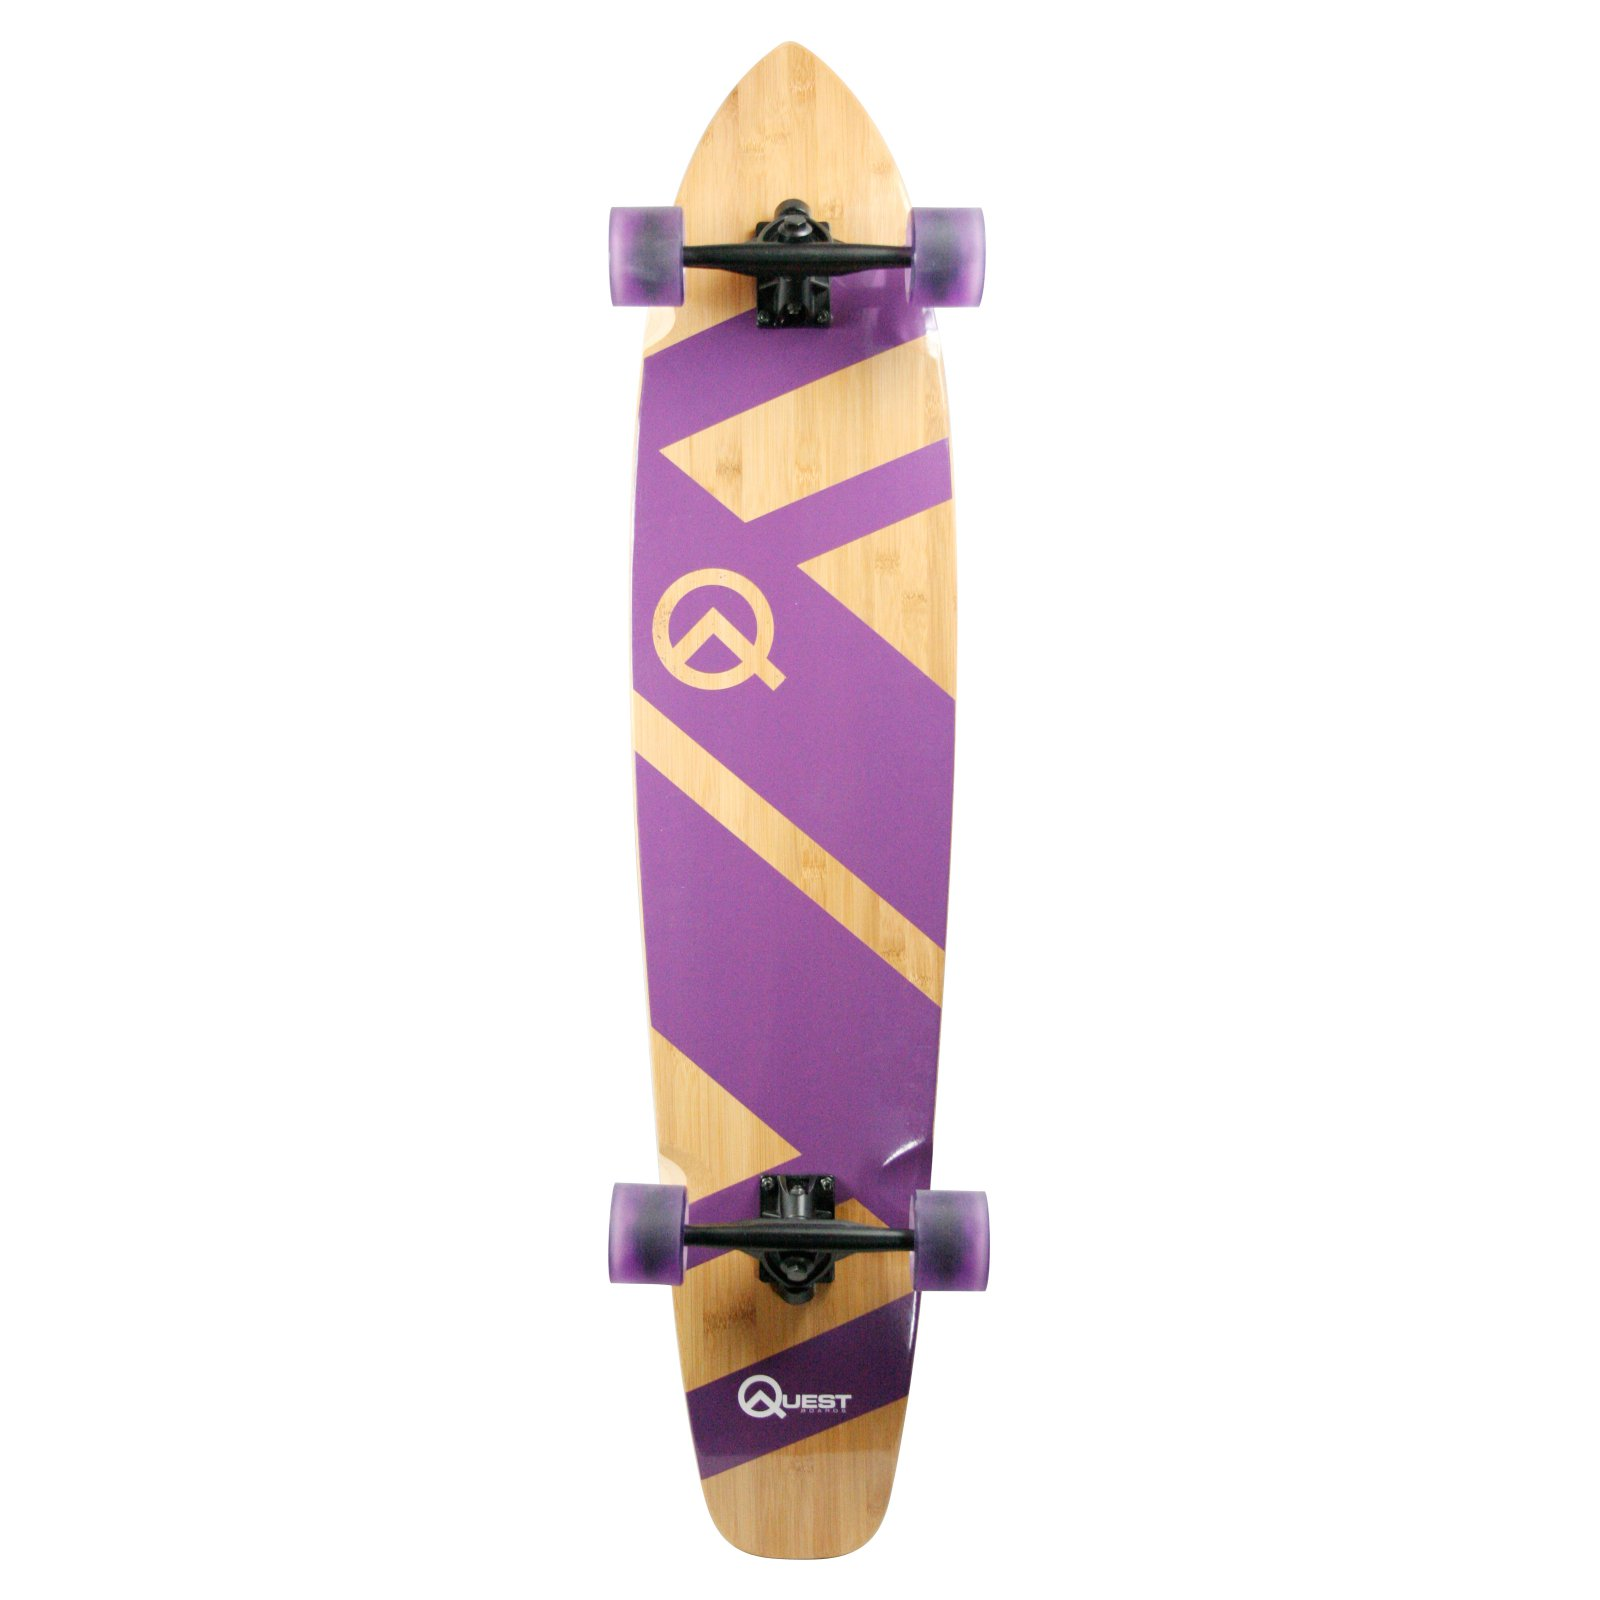 Made in Mars Quest Maxi Cruiser Skateboard Longboard by Overstock